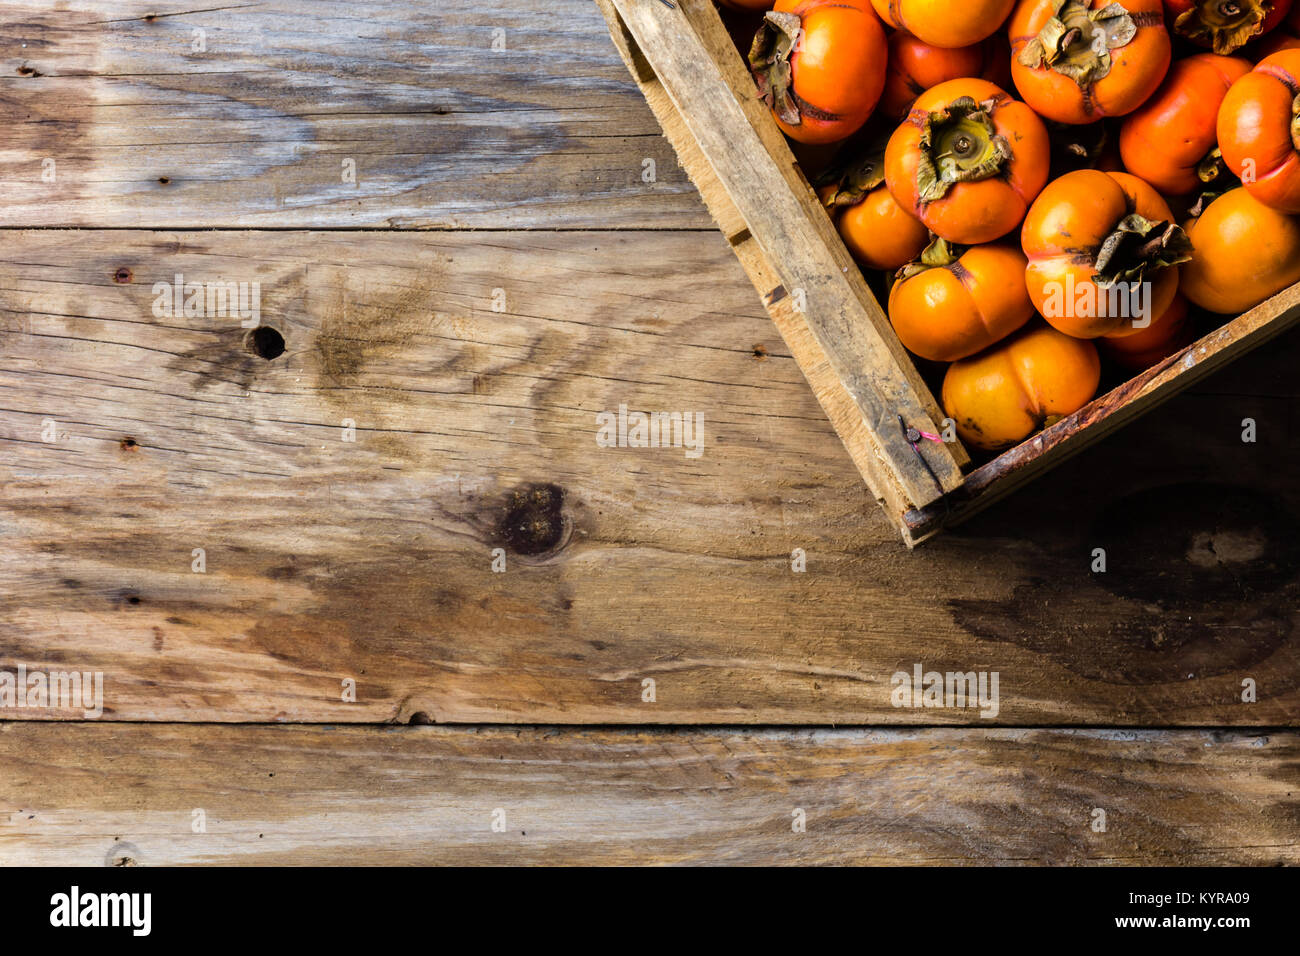 Fort de fruits le kaki kaki sur fond de bois ancien. Copy space Photo Stock